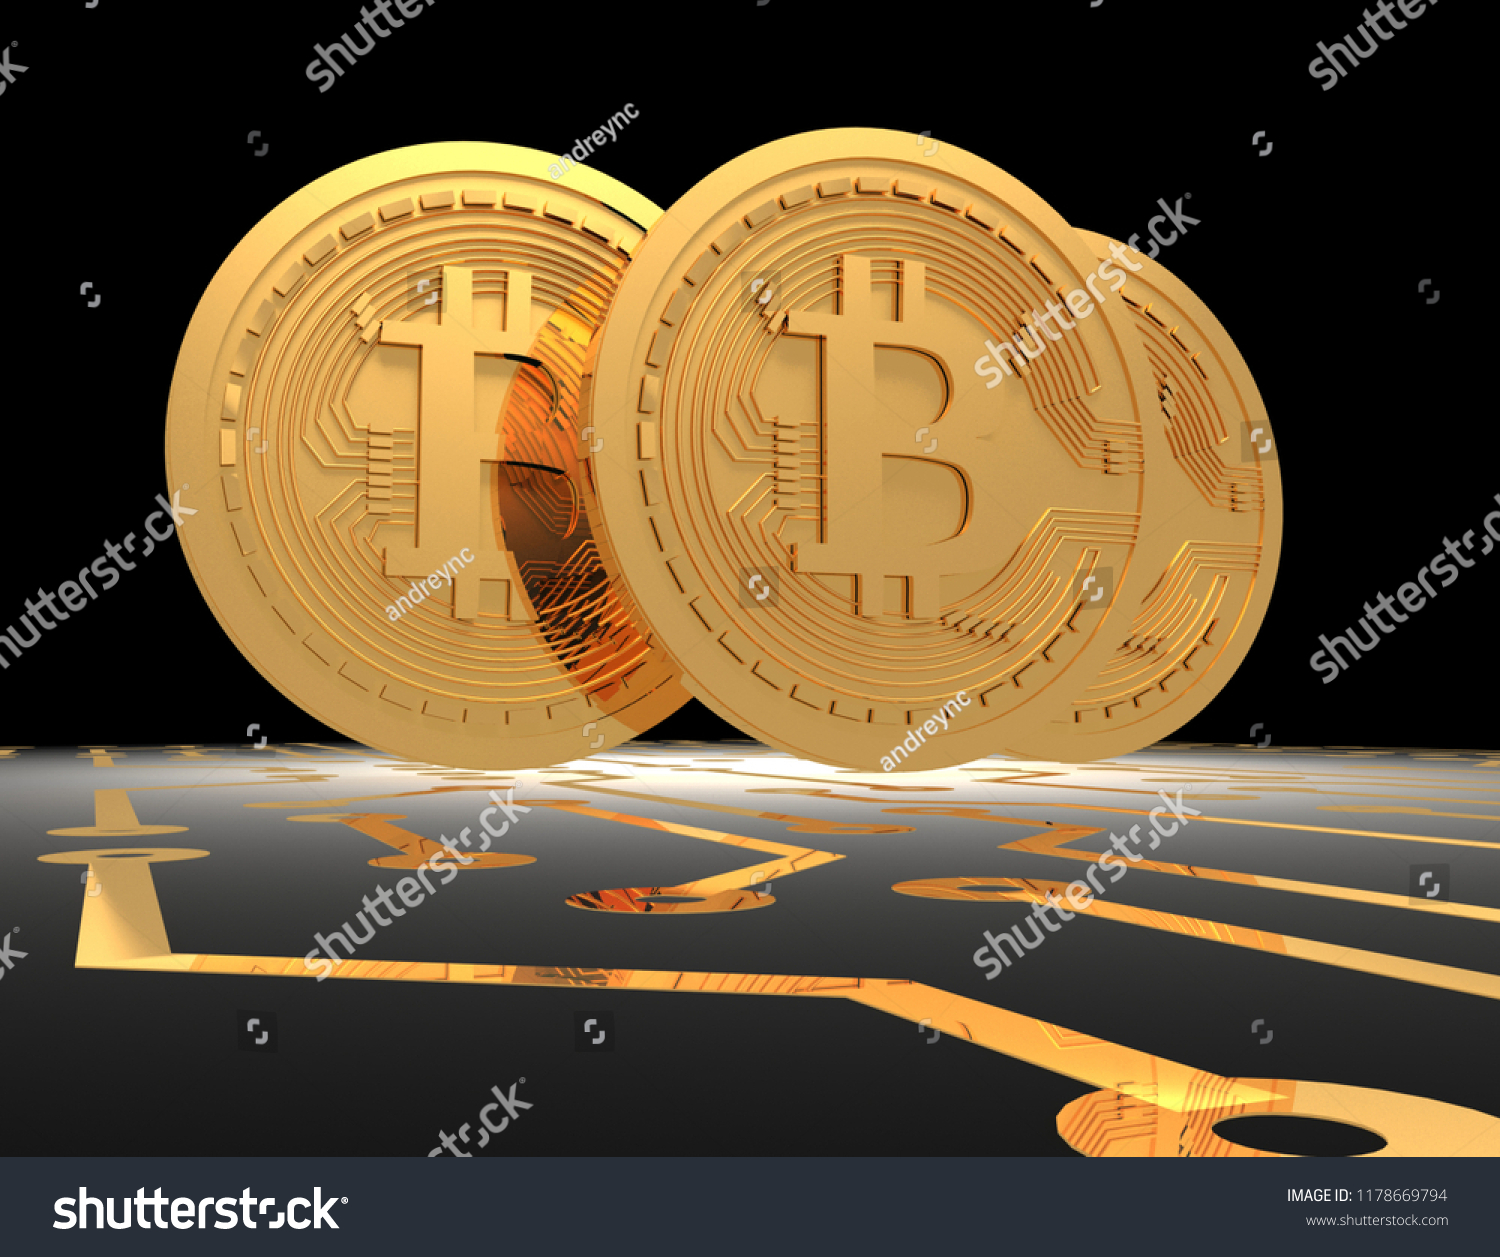 Bitcoins On Printed Circuit Board 3 D Stock Illustration 1178669794 Pcb The Printedcircuitboard 3d Royalty Free Photography Rendered